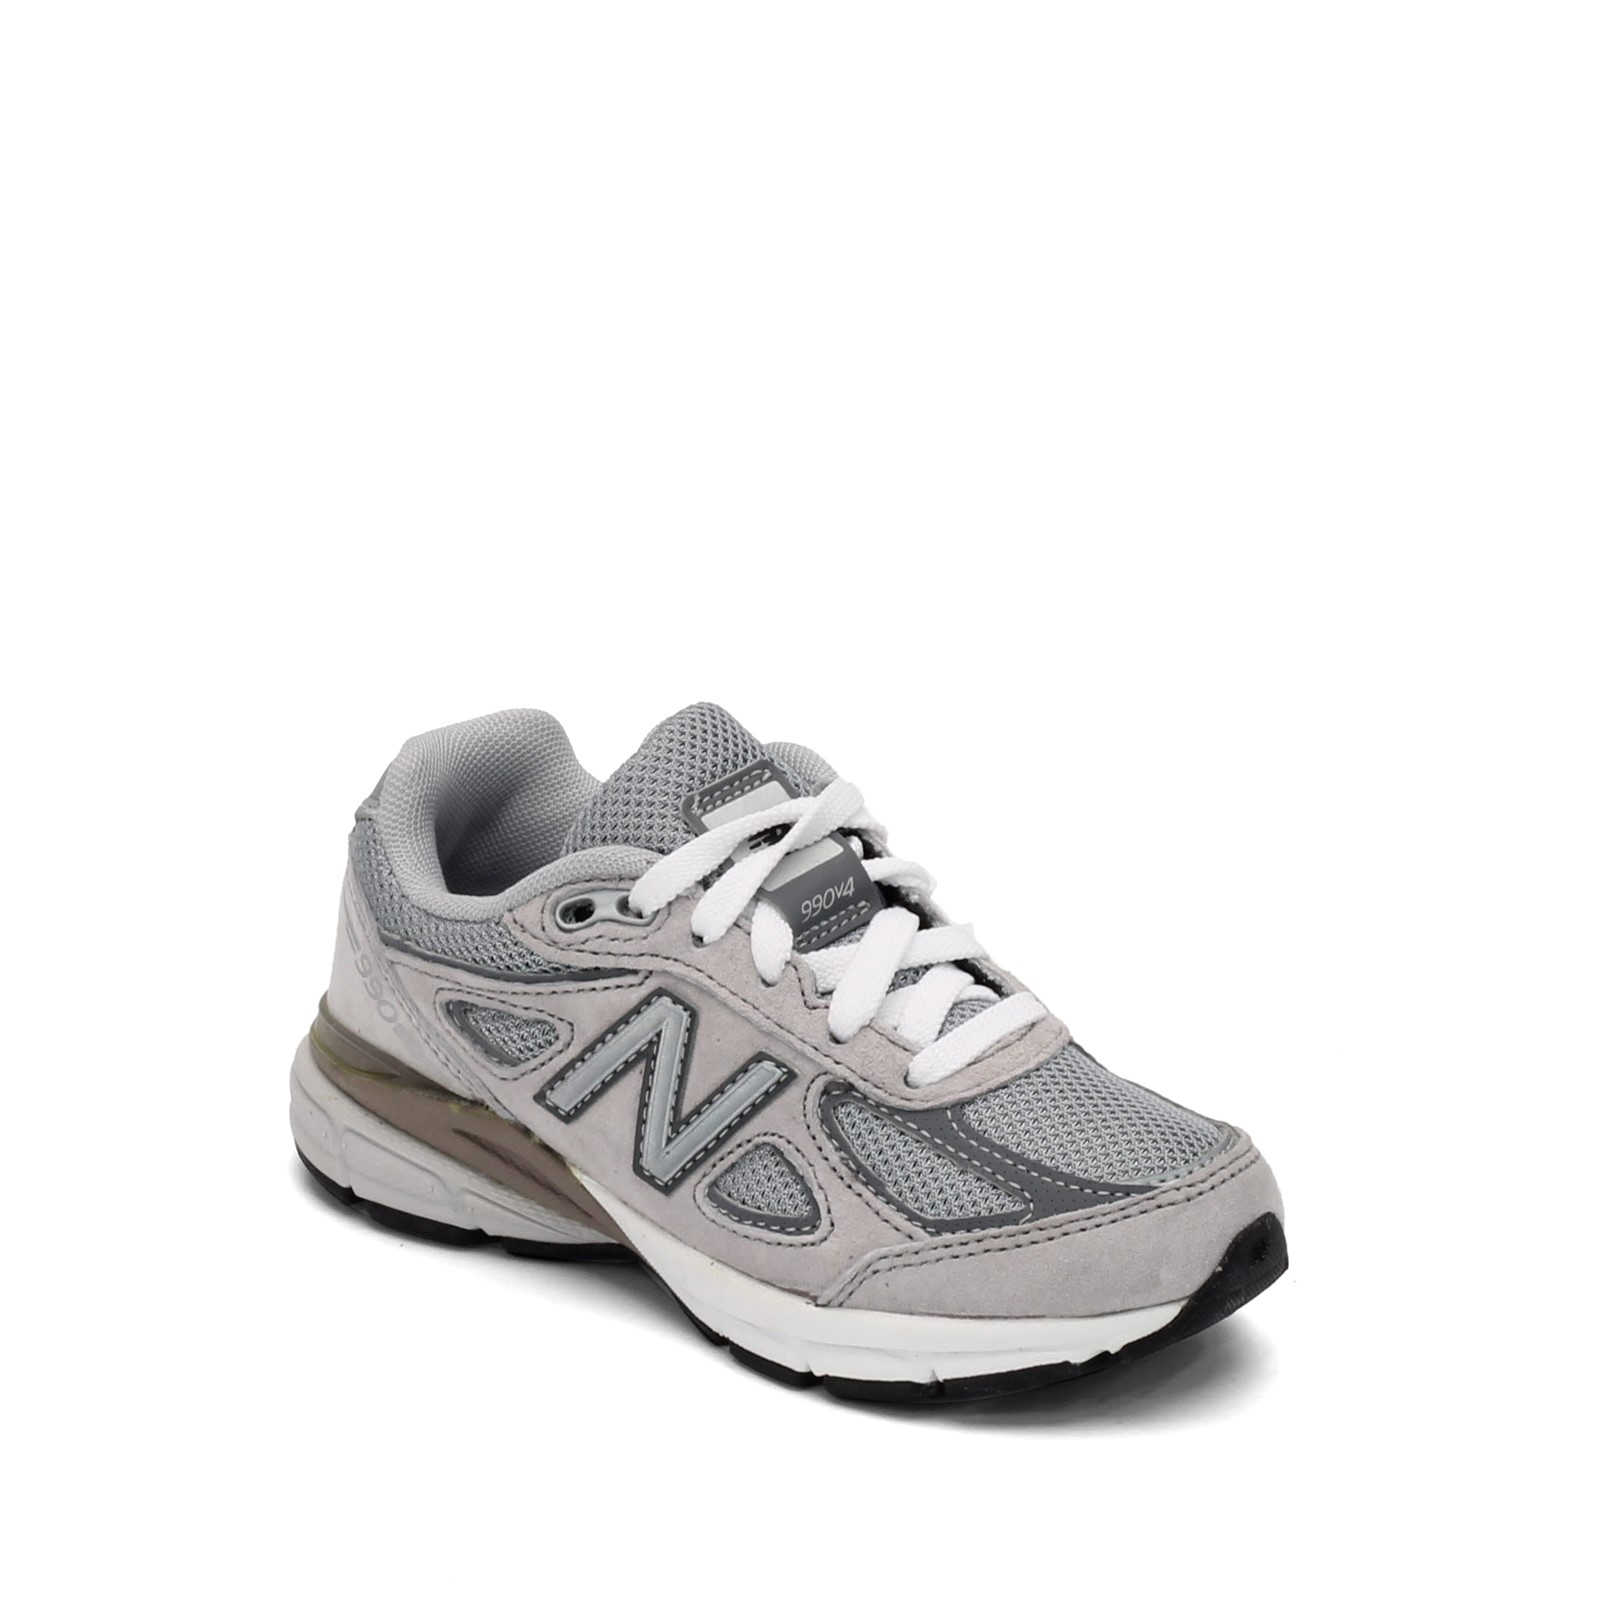 Boy's New Balance, 990 v4 Athletic Sneaker